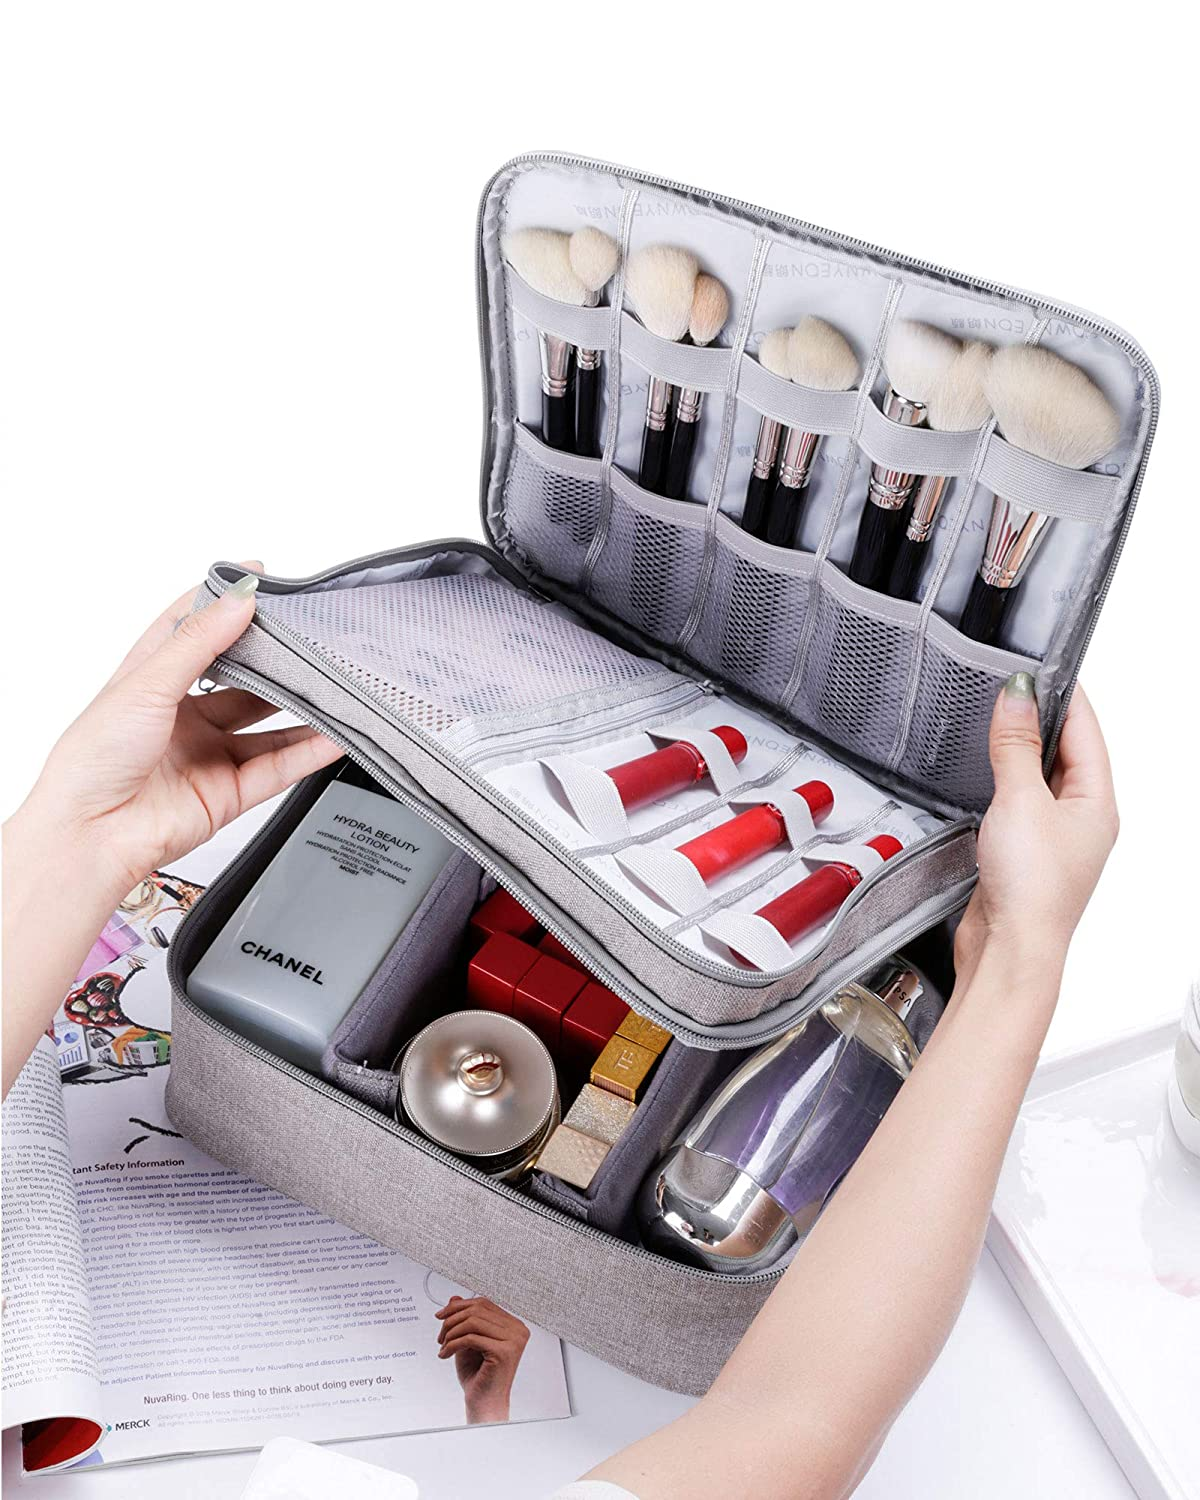 Rownyeon Makeup Train Cases Travel Makeup Bag Waterproof Portable Cosmetic Cases Organizer with Adjustable Dividers for Cosmetics Makeup Brushes Toiletry Digital Large